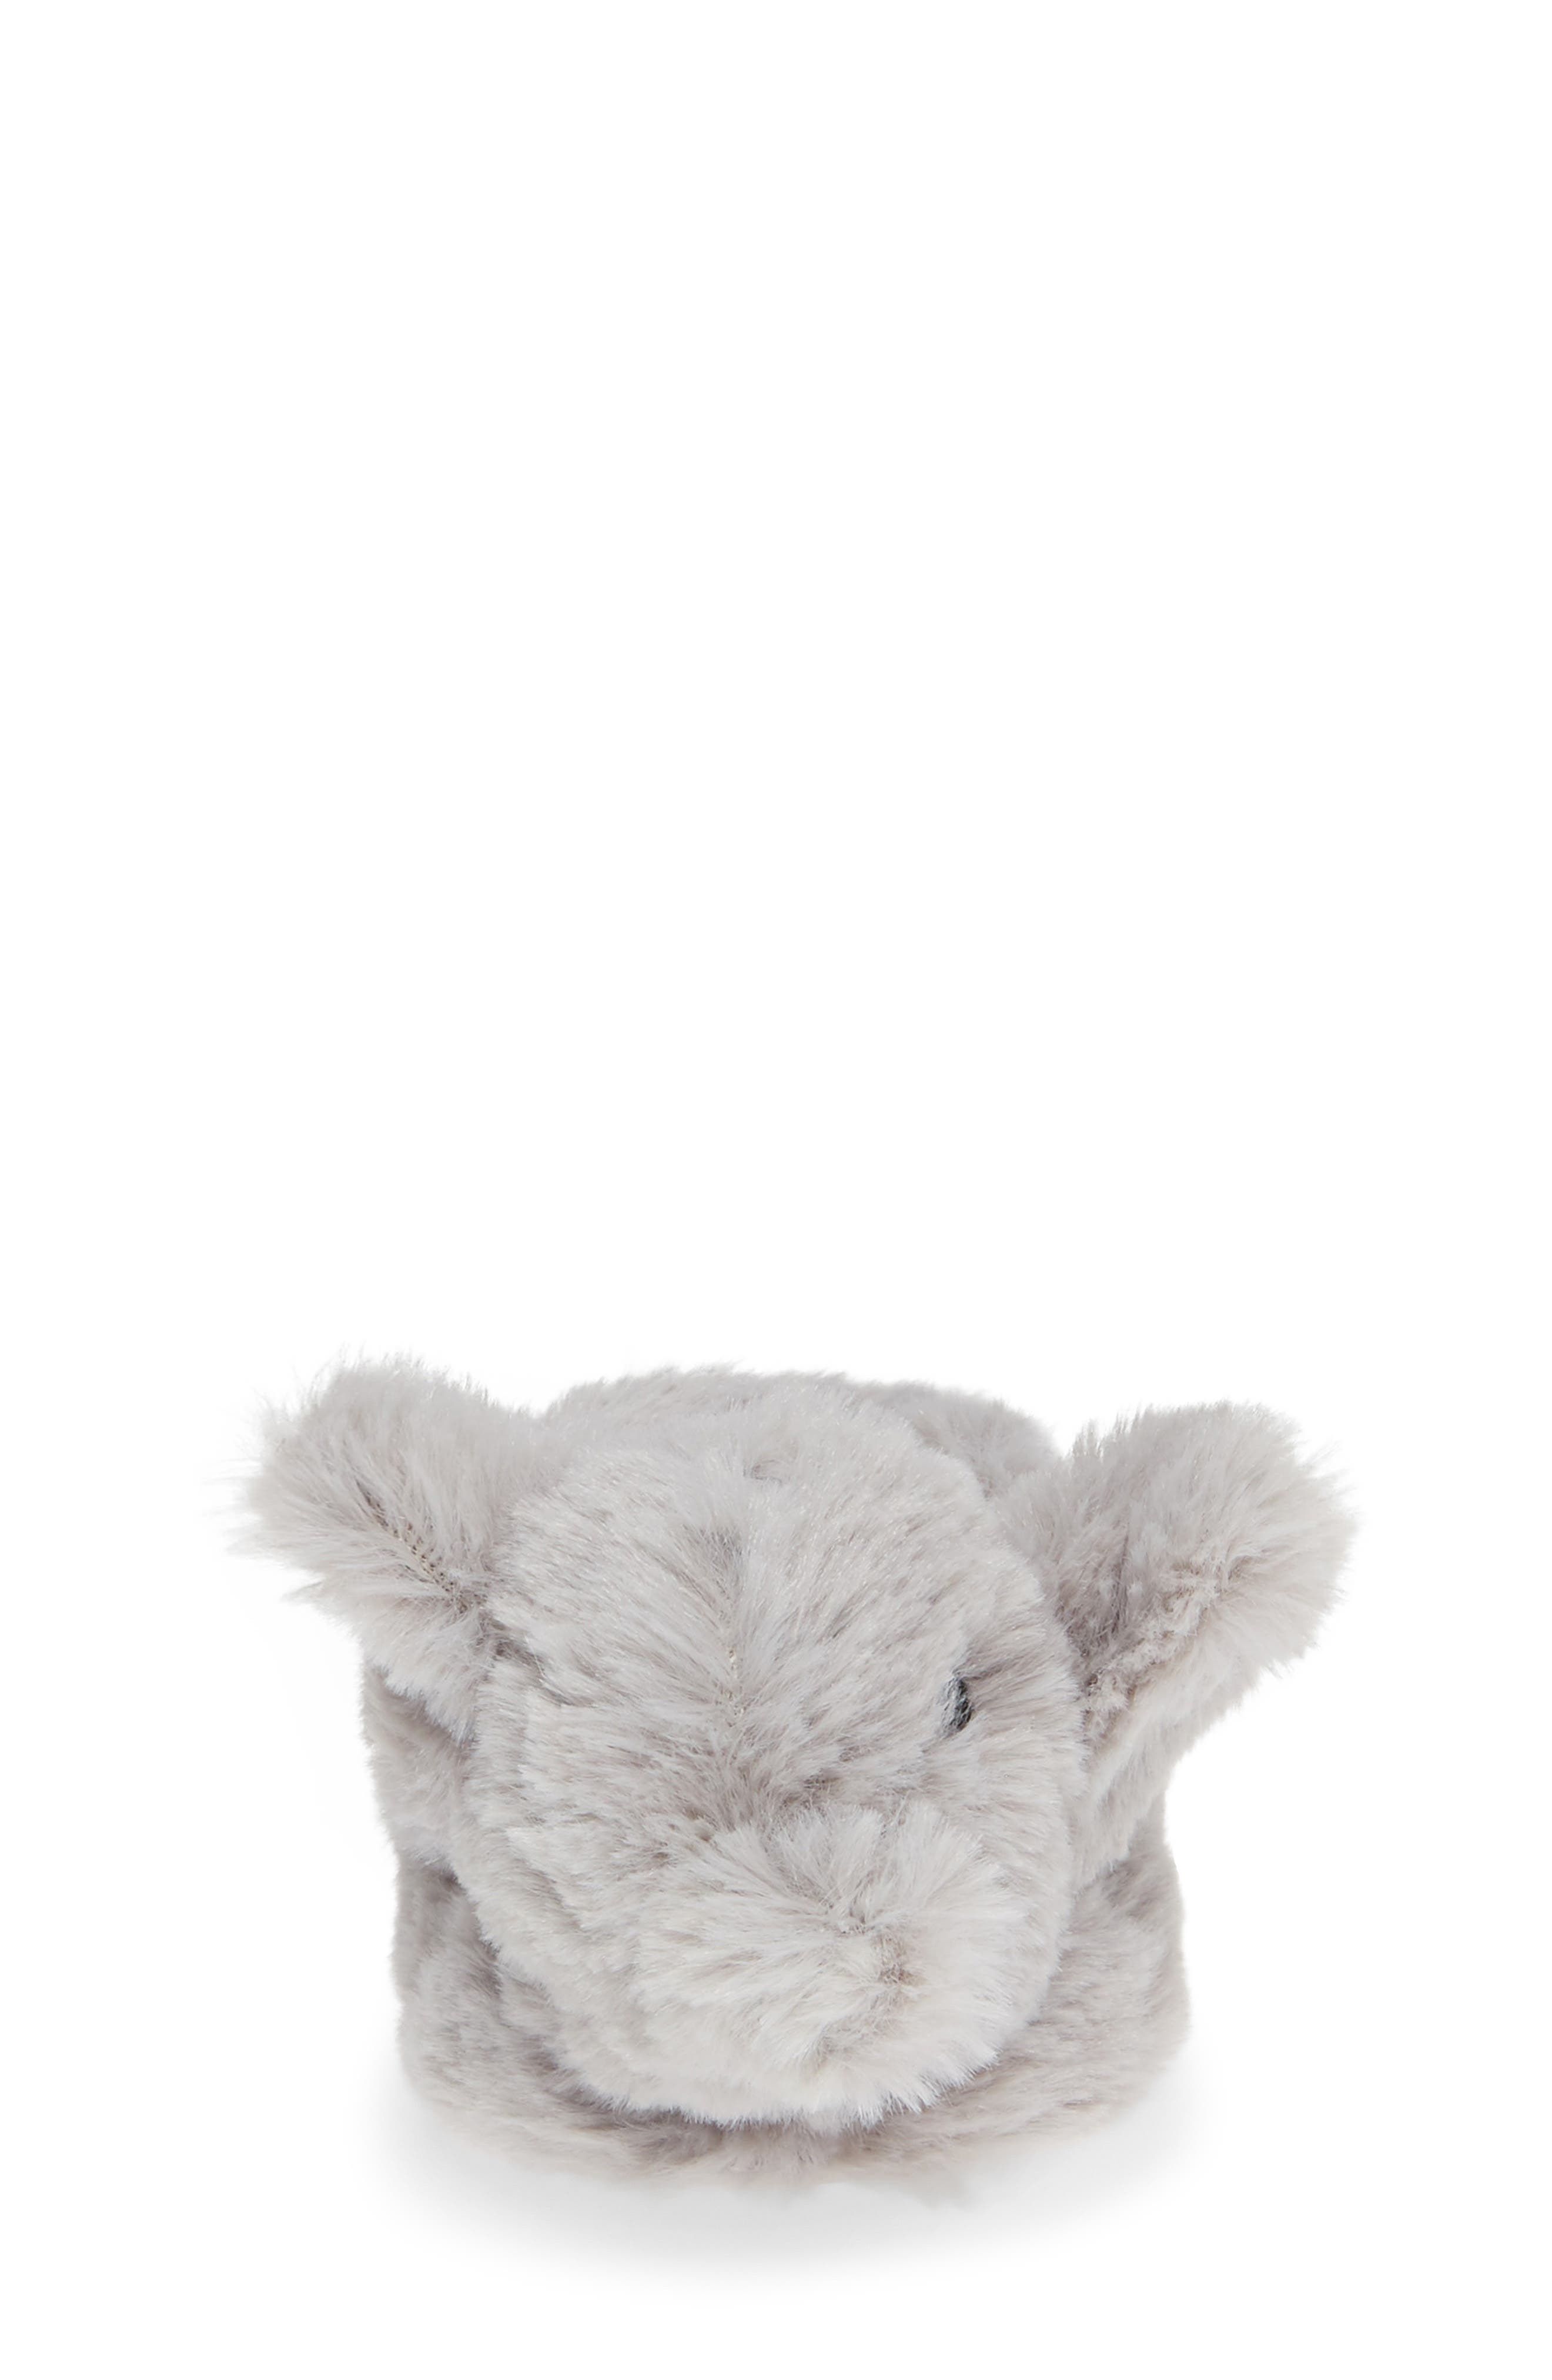 Faux Fur Animal Slipper,                             Alternate thumbnail 4, color,                             GREY ELEPHANT